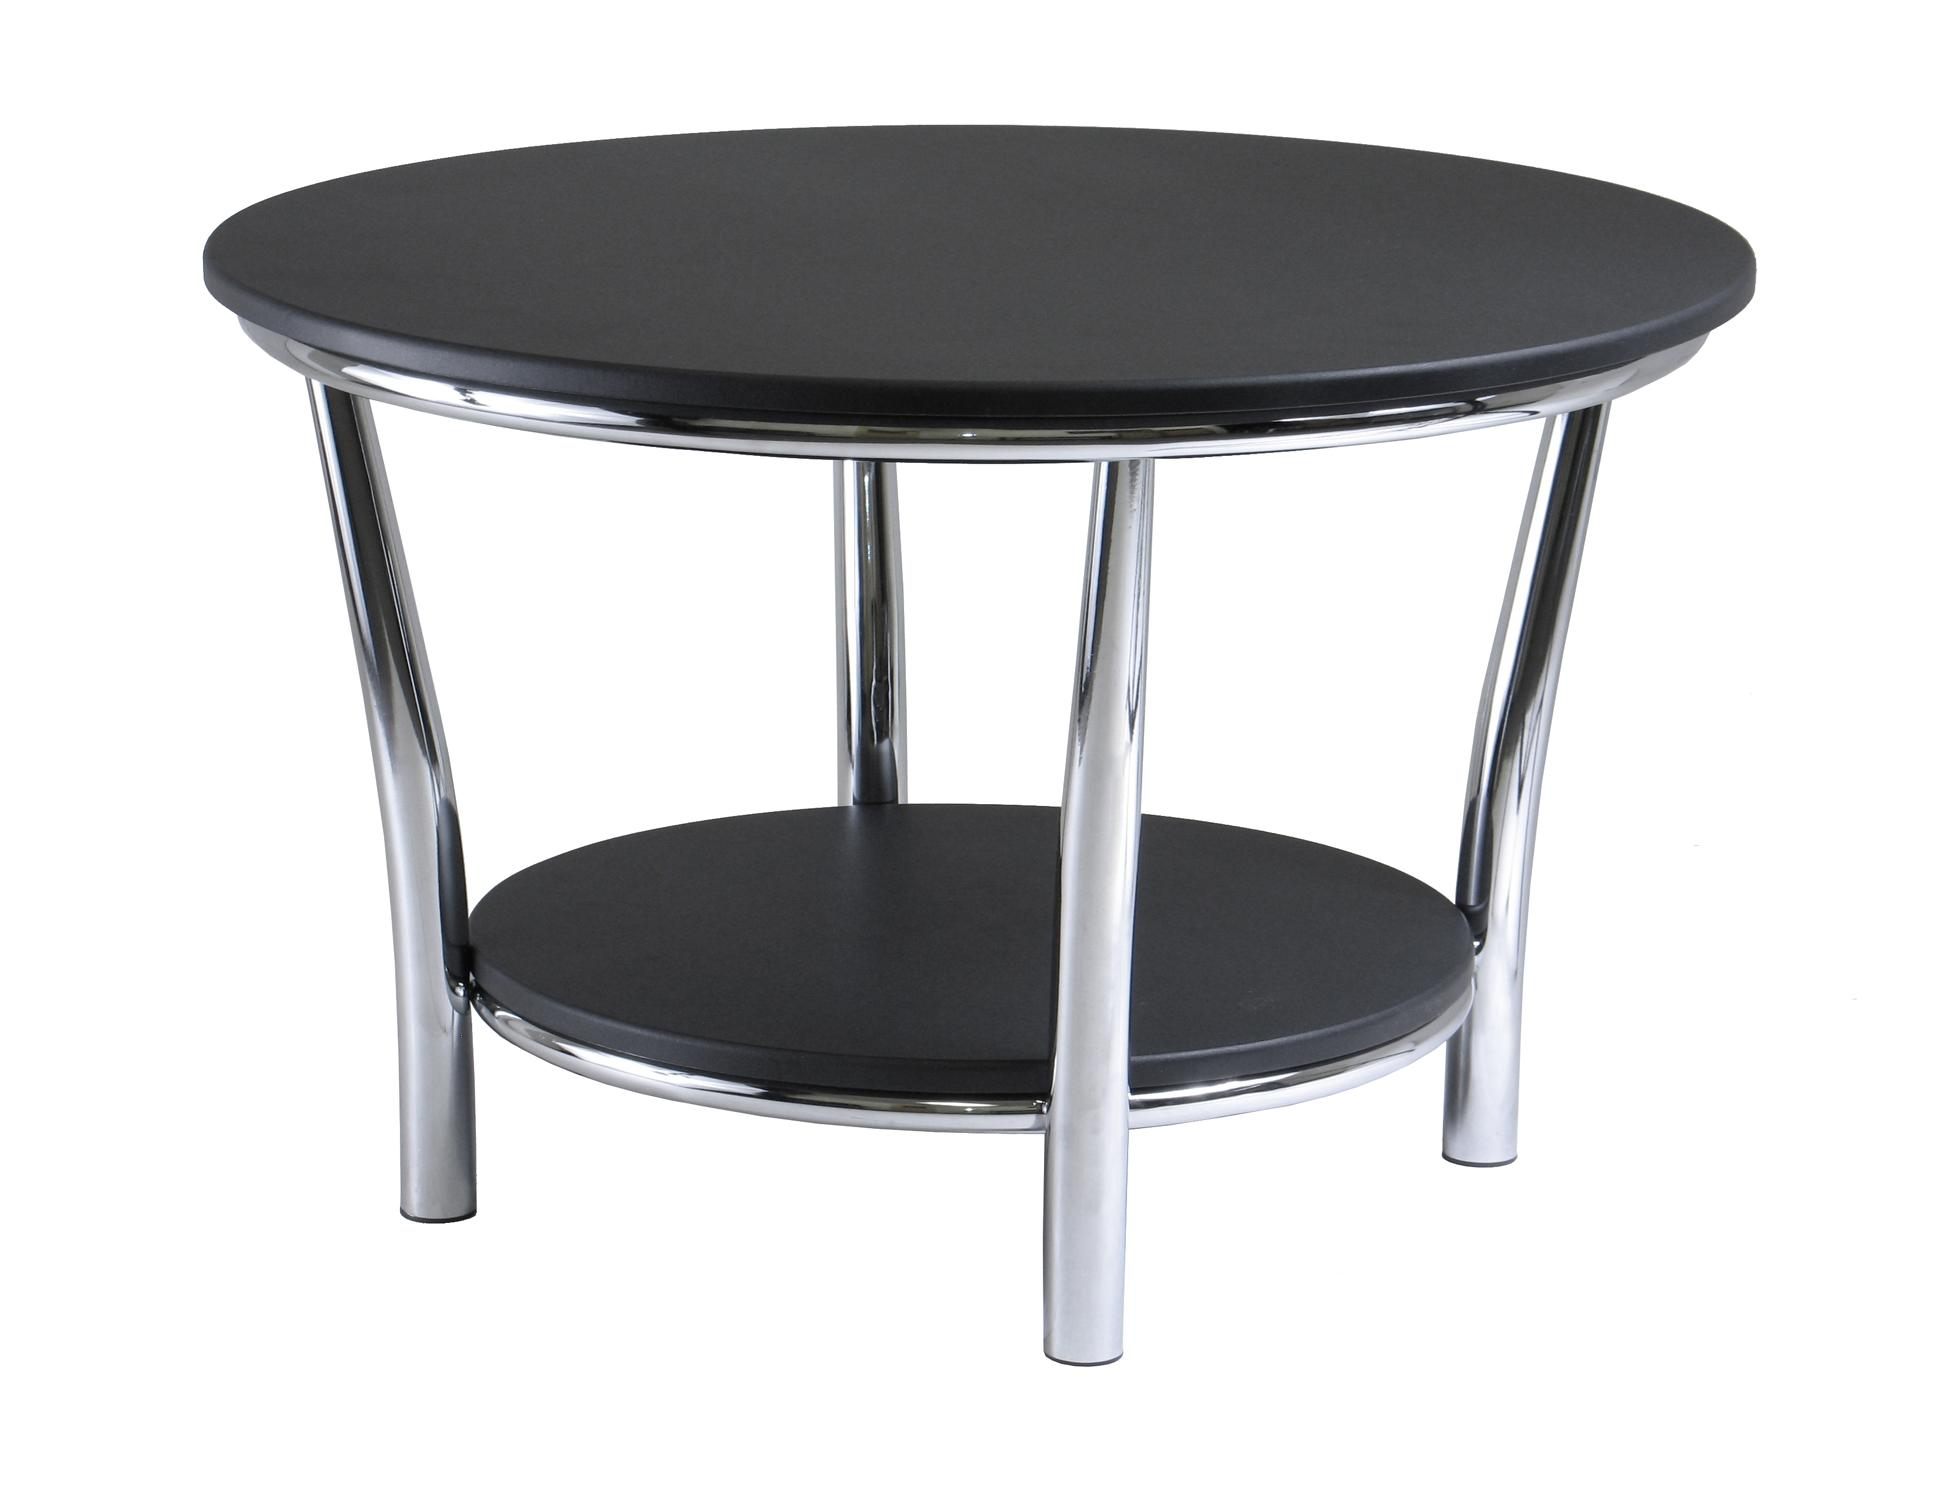 The Best Contemporary Round Black Coffee Table with Storage